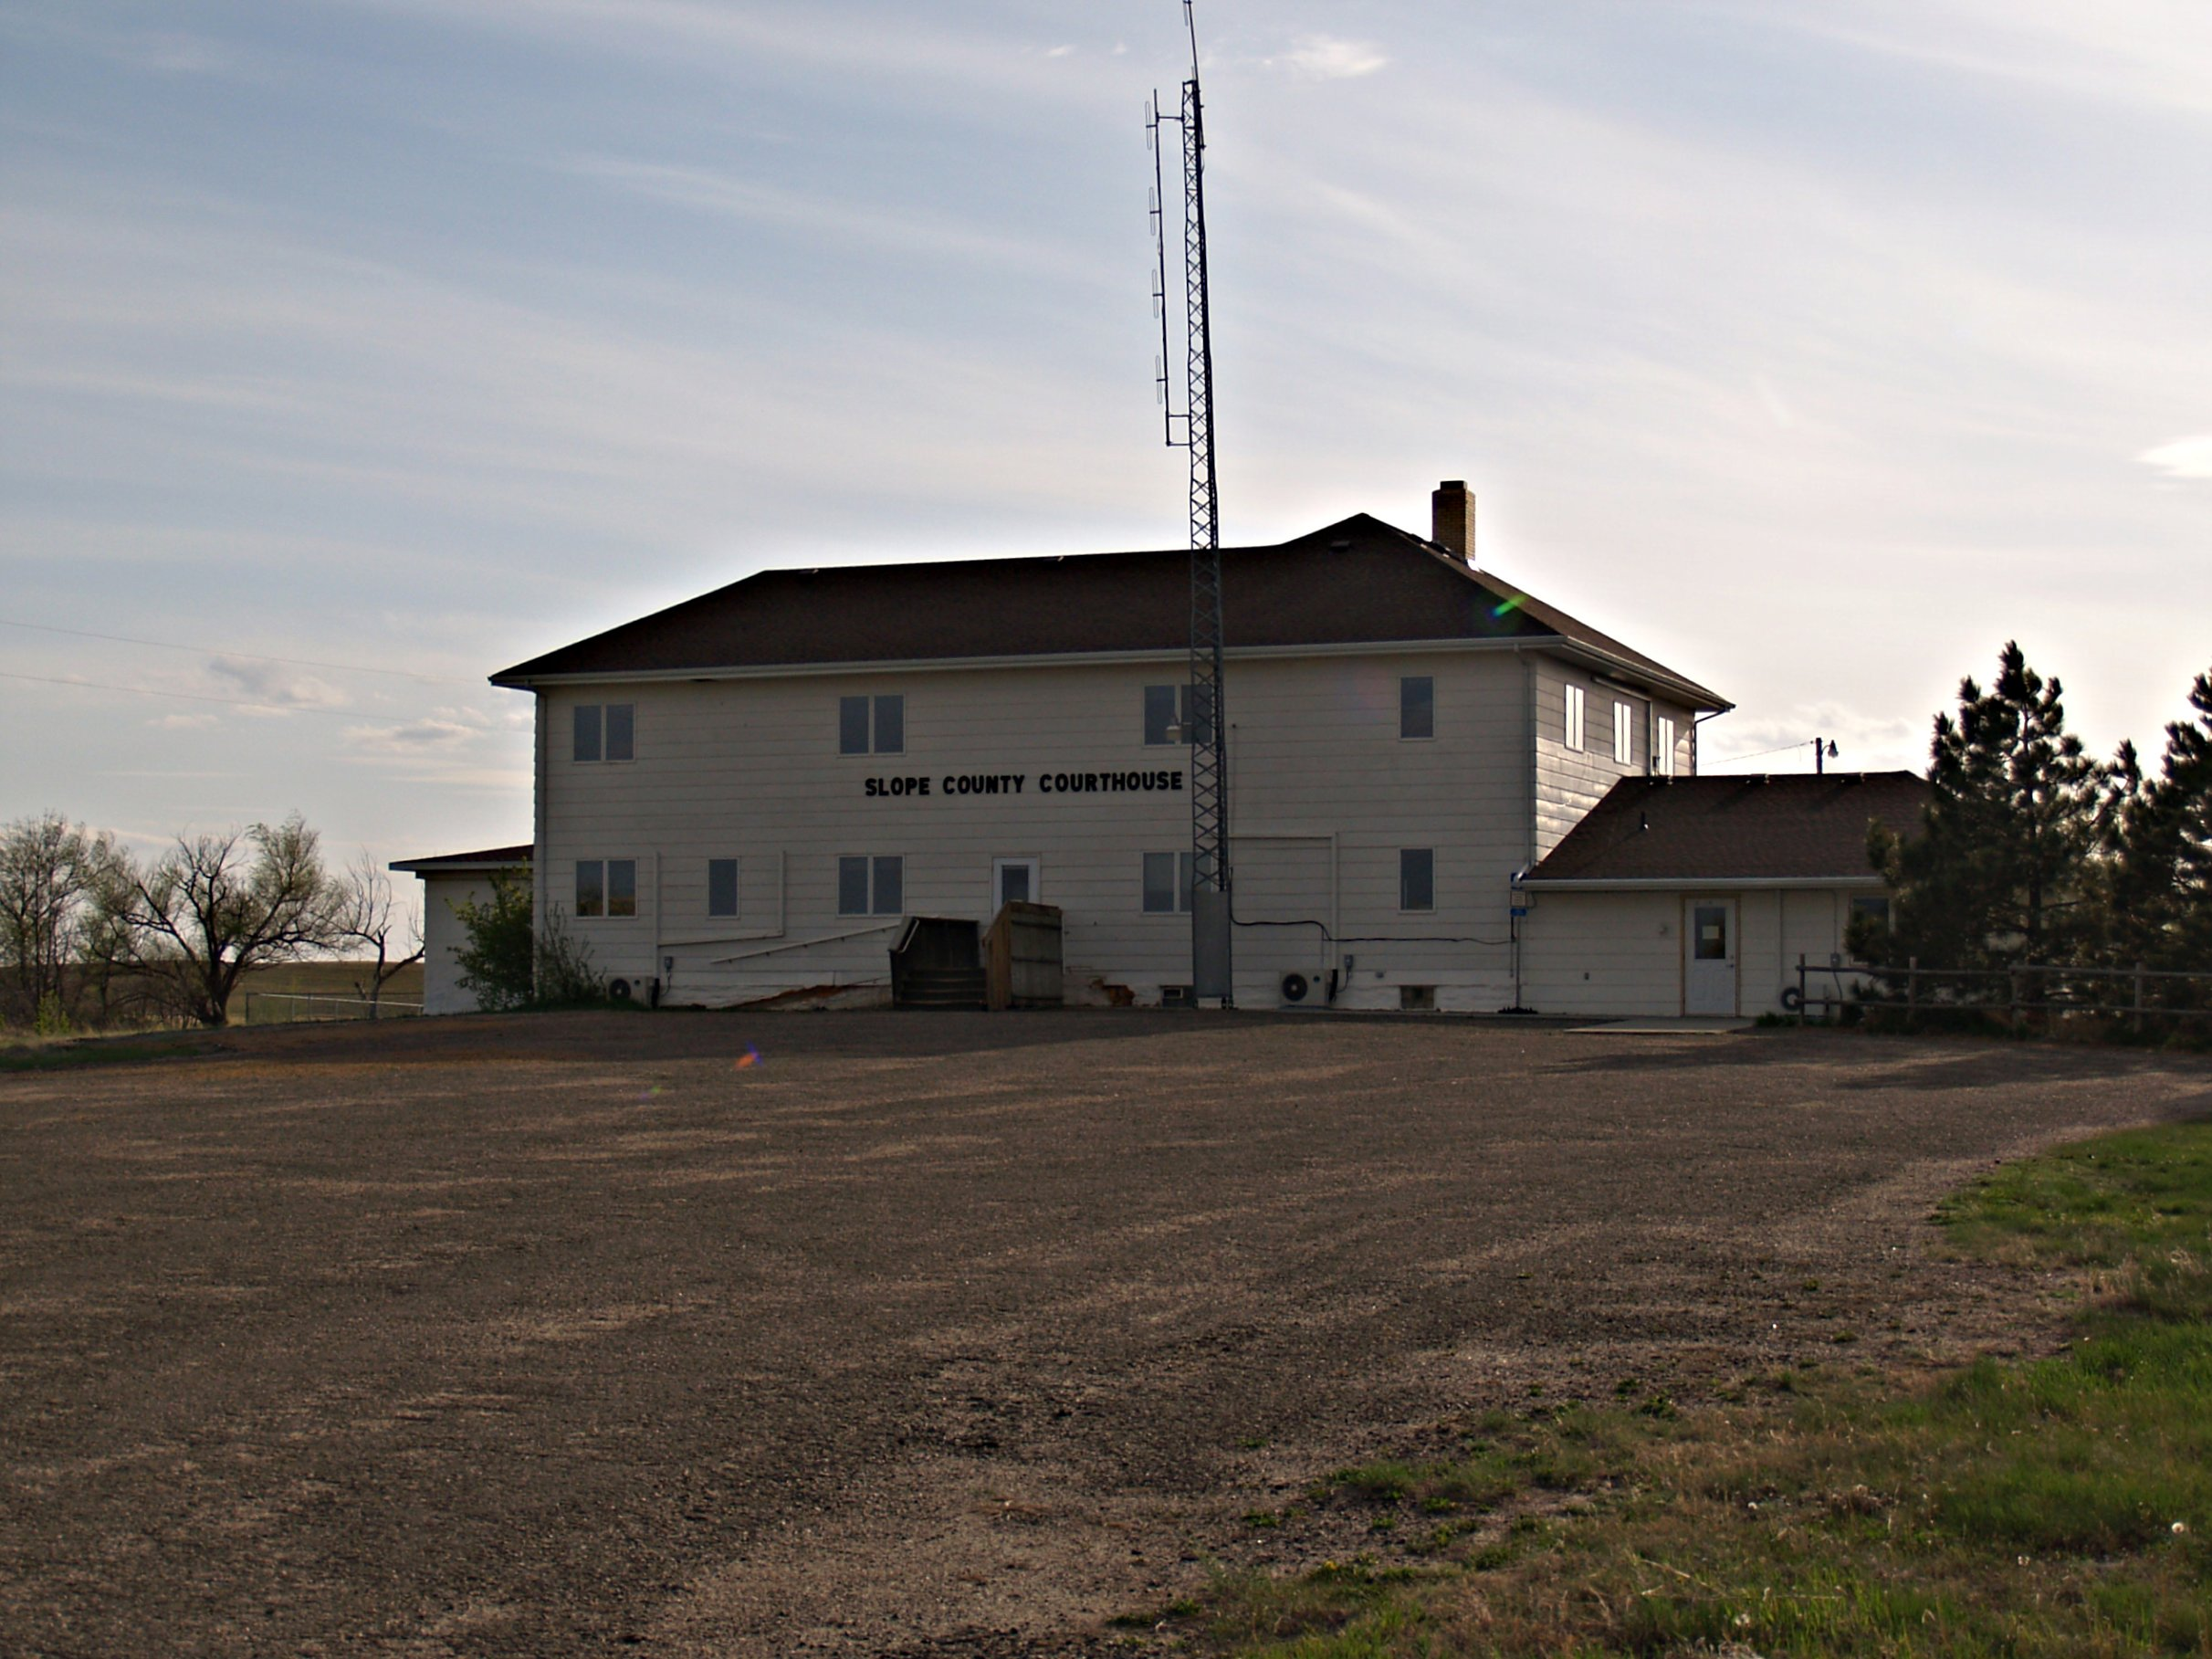 north slope county black singles Hunt for north slope county, ak apartments for rent on realtorcom® discover north slope county apartment rental listings, vivid photos and more today.